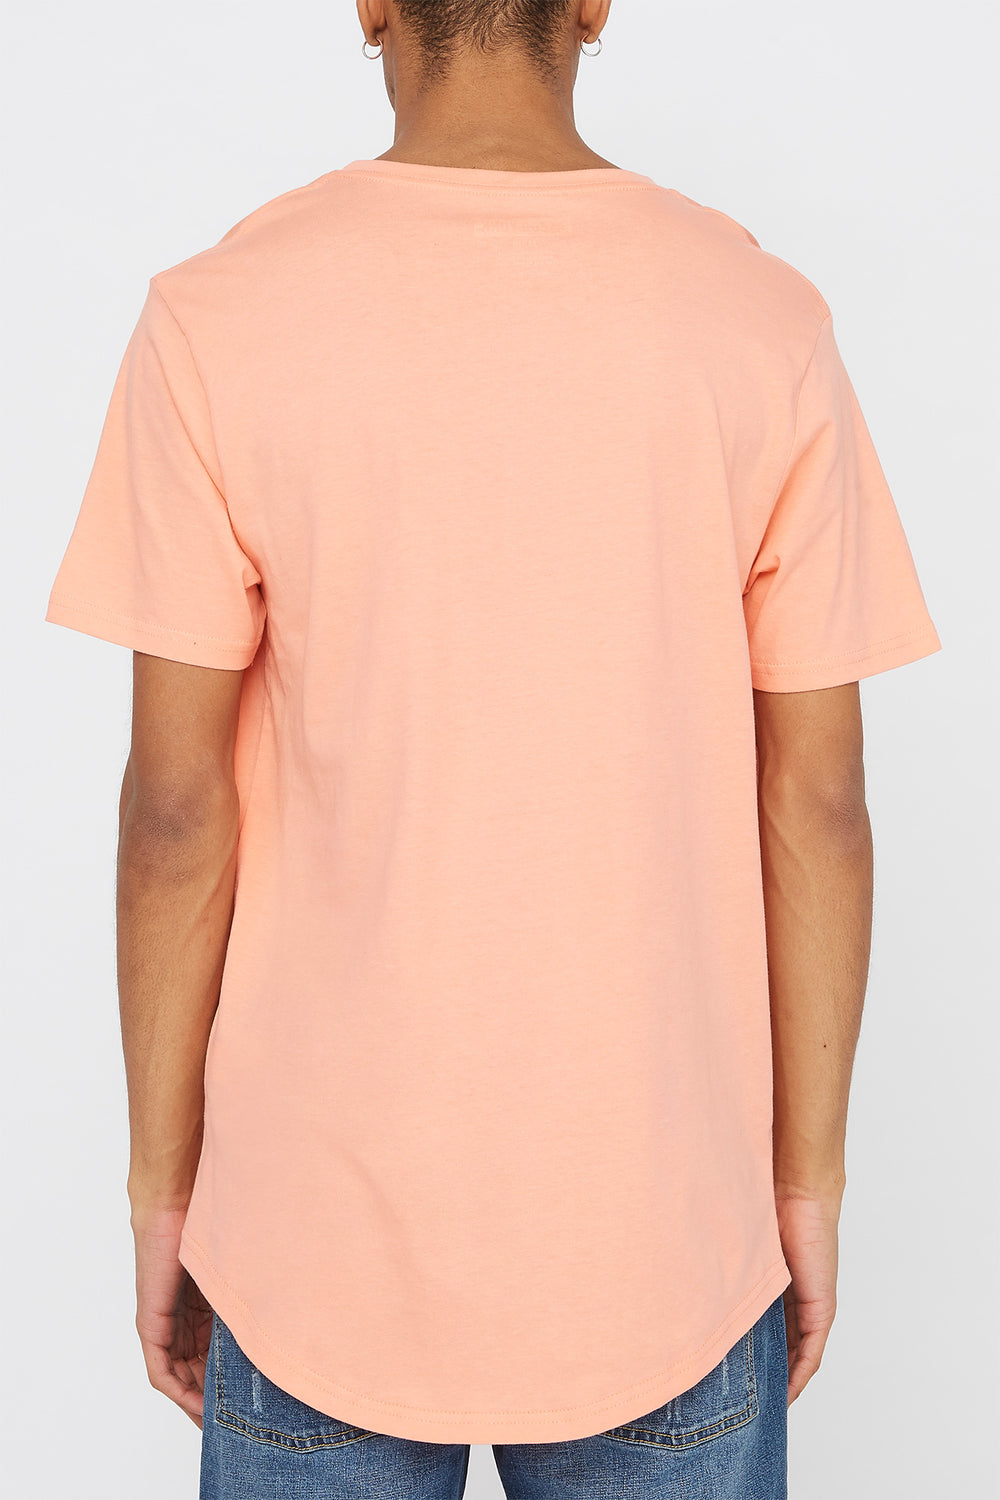 Zoo York Mens Pocket T-Shirt Coral